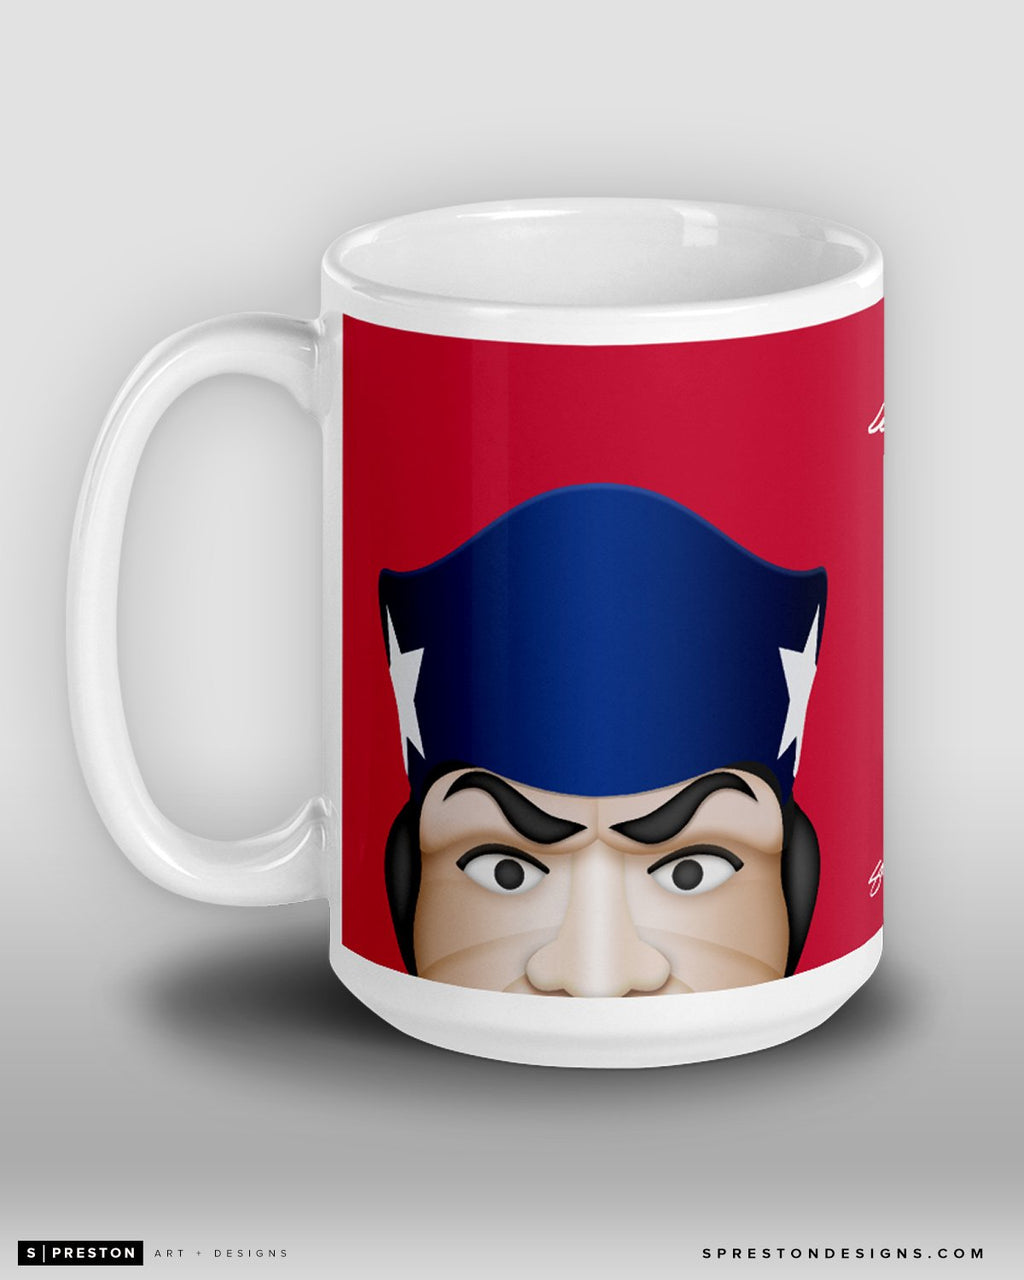 Minimalist Pat Patriot Coffee Mug New England Patriots Mascot  - S. Preston